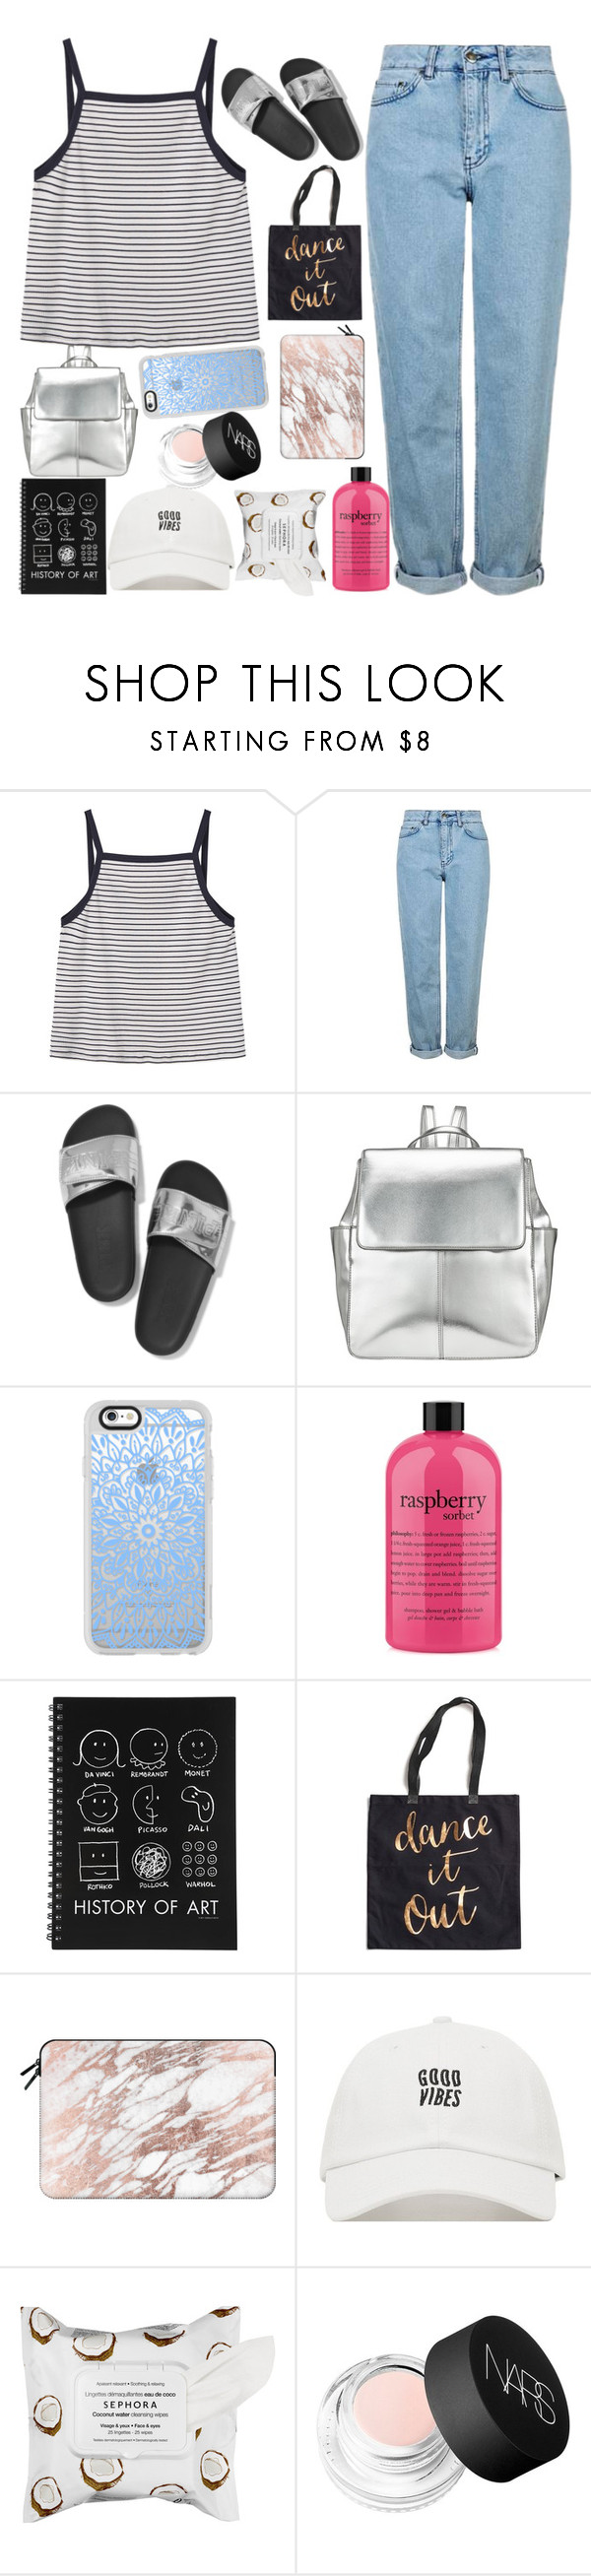 """""""australia"""" by h0ld-0n-let-g0 ❤ liked on Polyvore featuring MANGO, Topshop, Victoria's Secret, Kin by John Lewis, Casetify, philosophy, Rosanna, Sephora Collection, NARS Cosmetics and MiaBenedicte"""